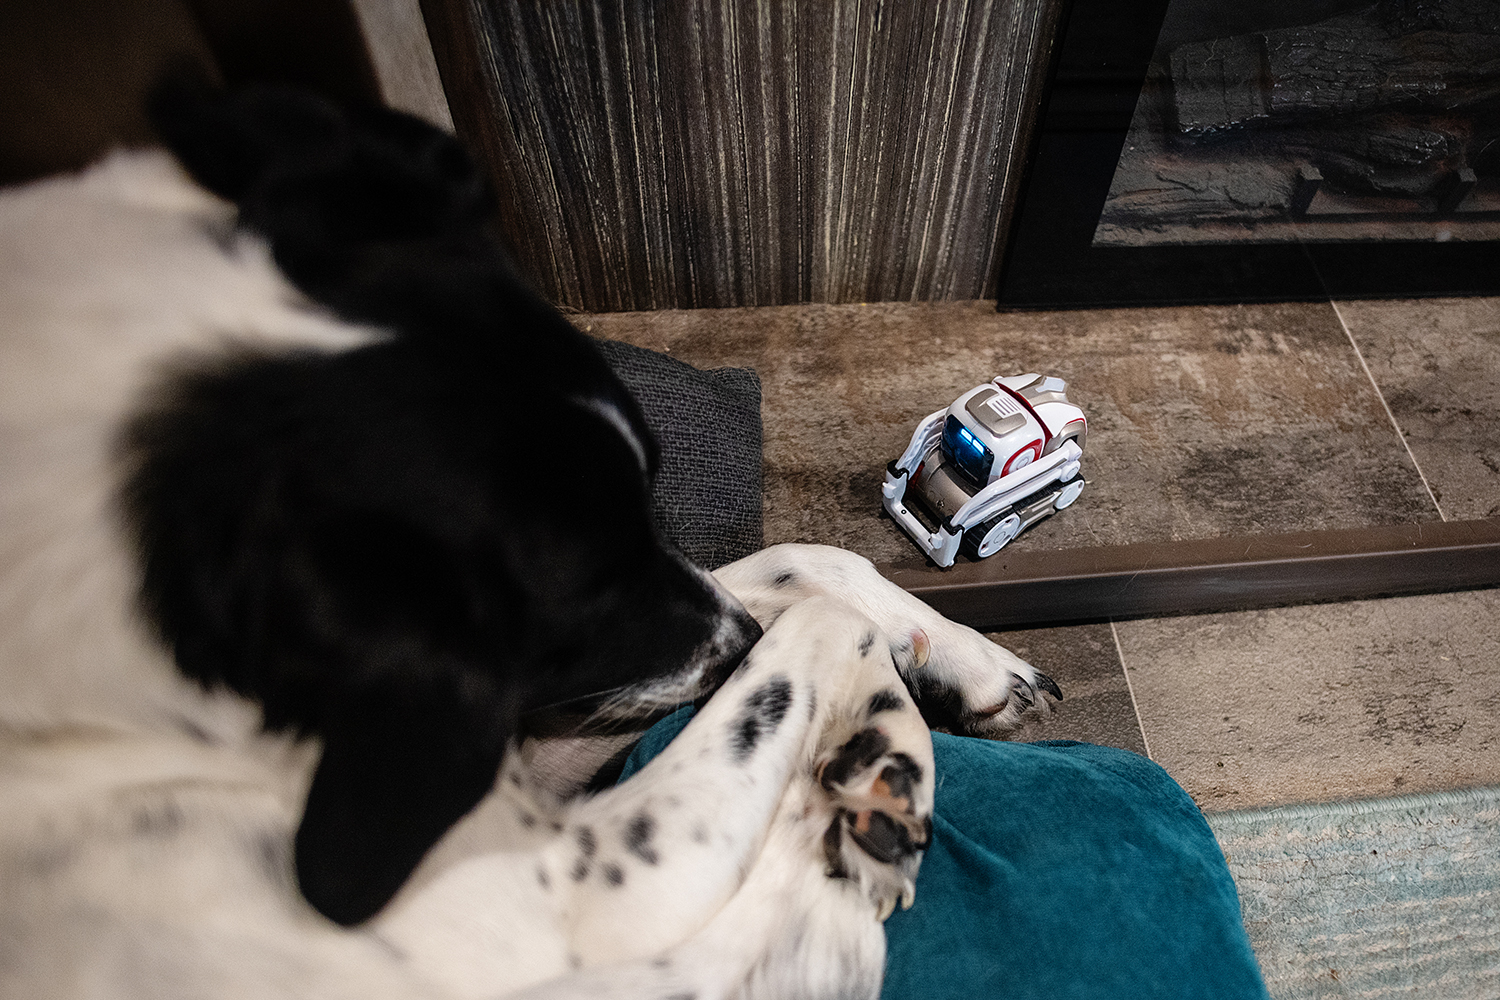 photo of dog with cosmo robot